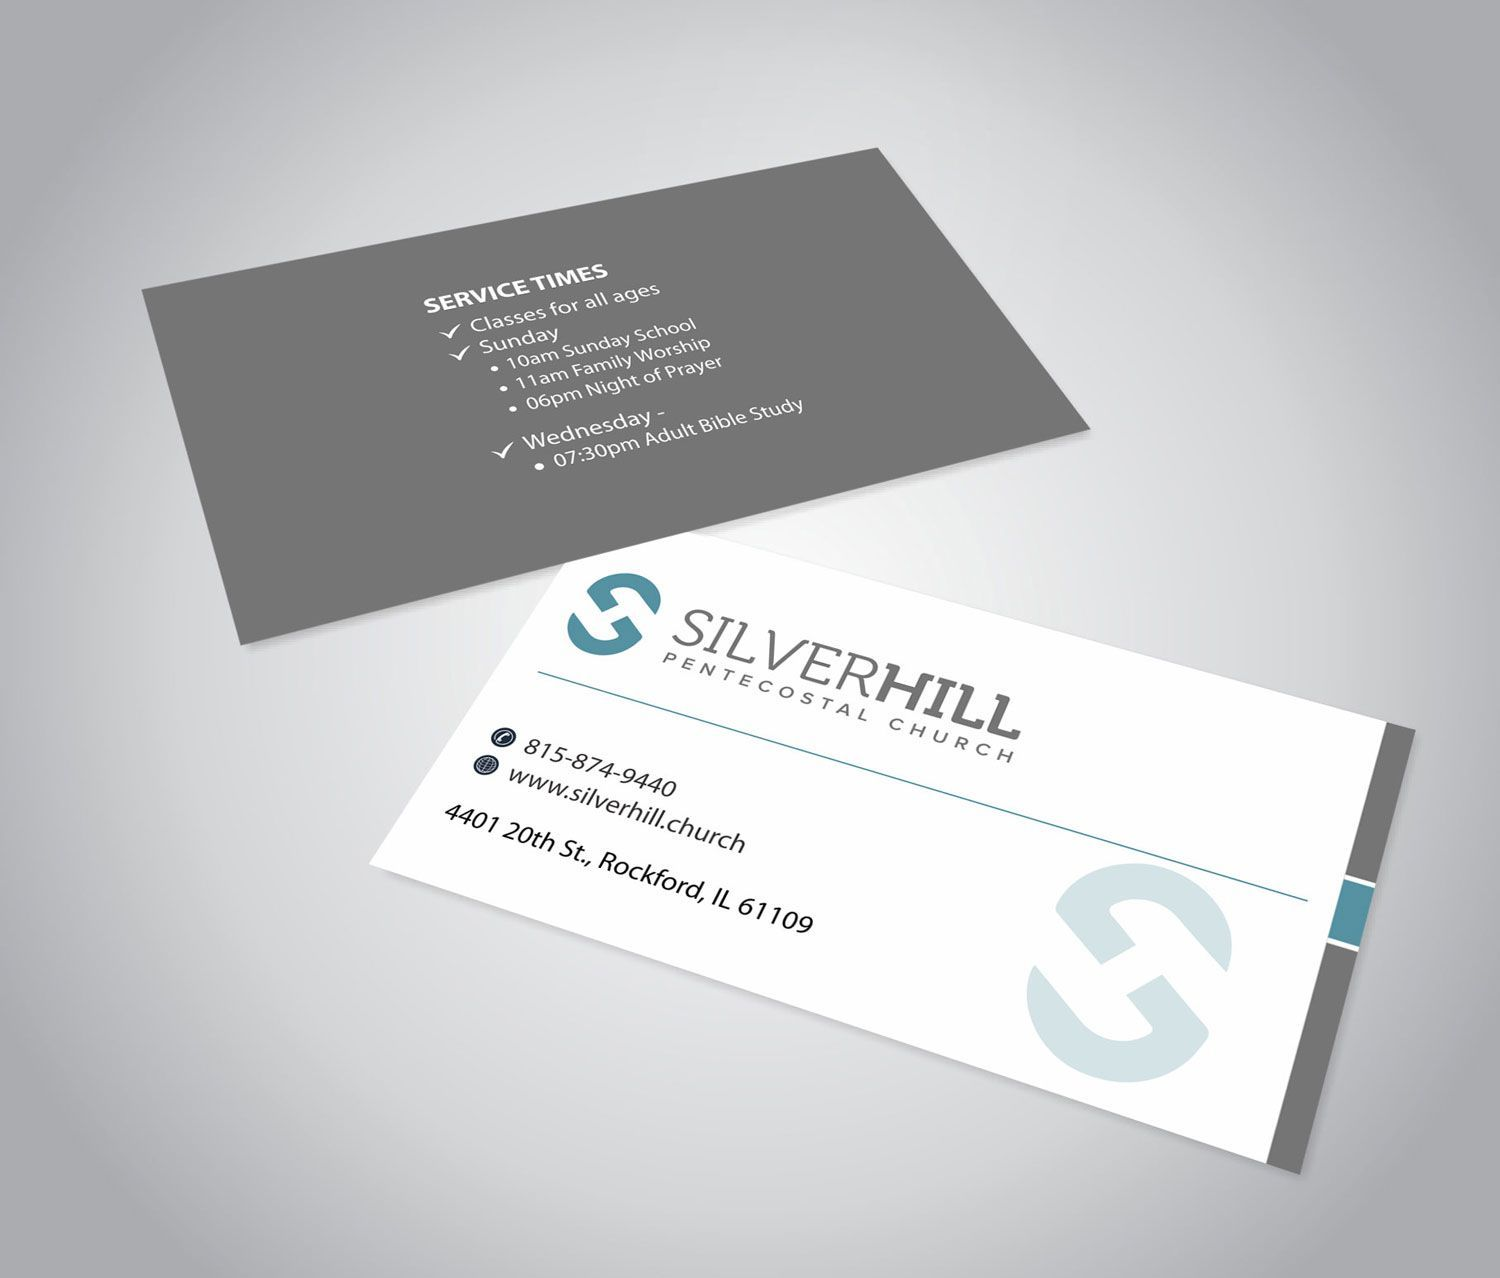 Pin By Aline On Cartao De Visita Professional Business Cards Business Cards Modern Church